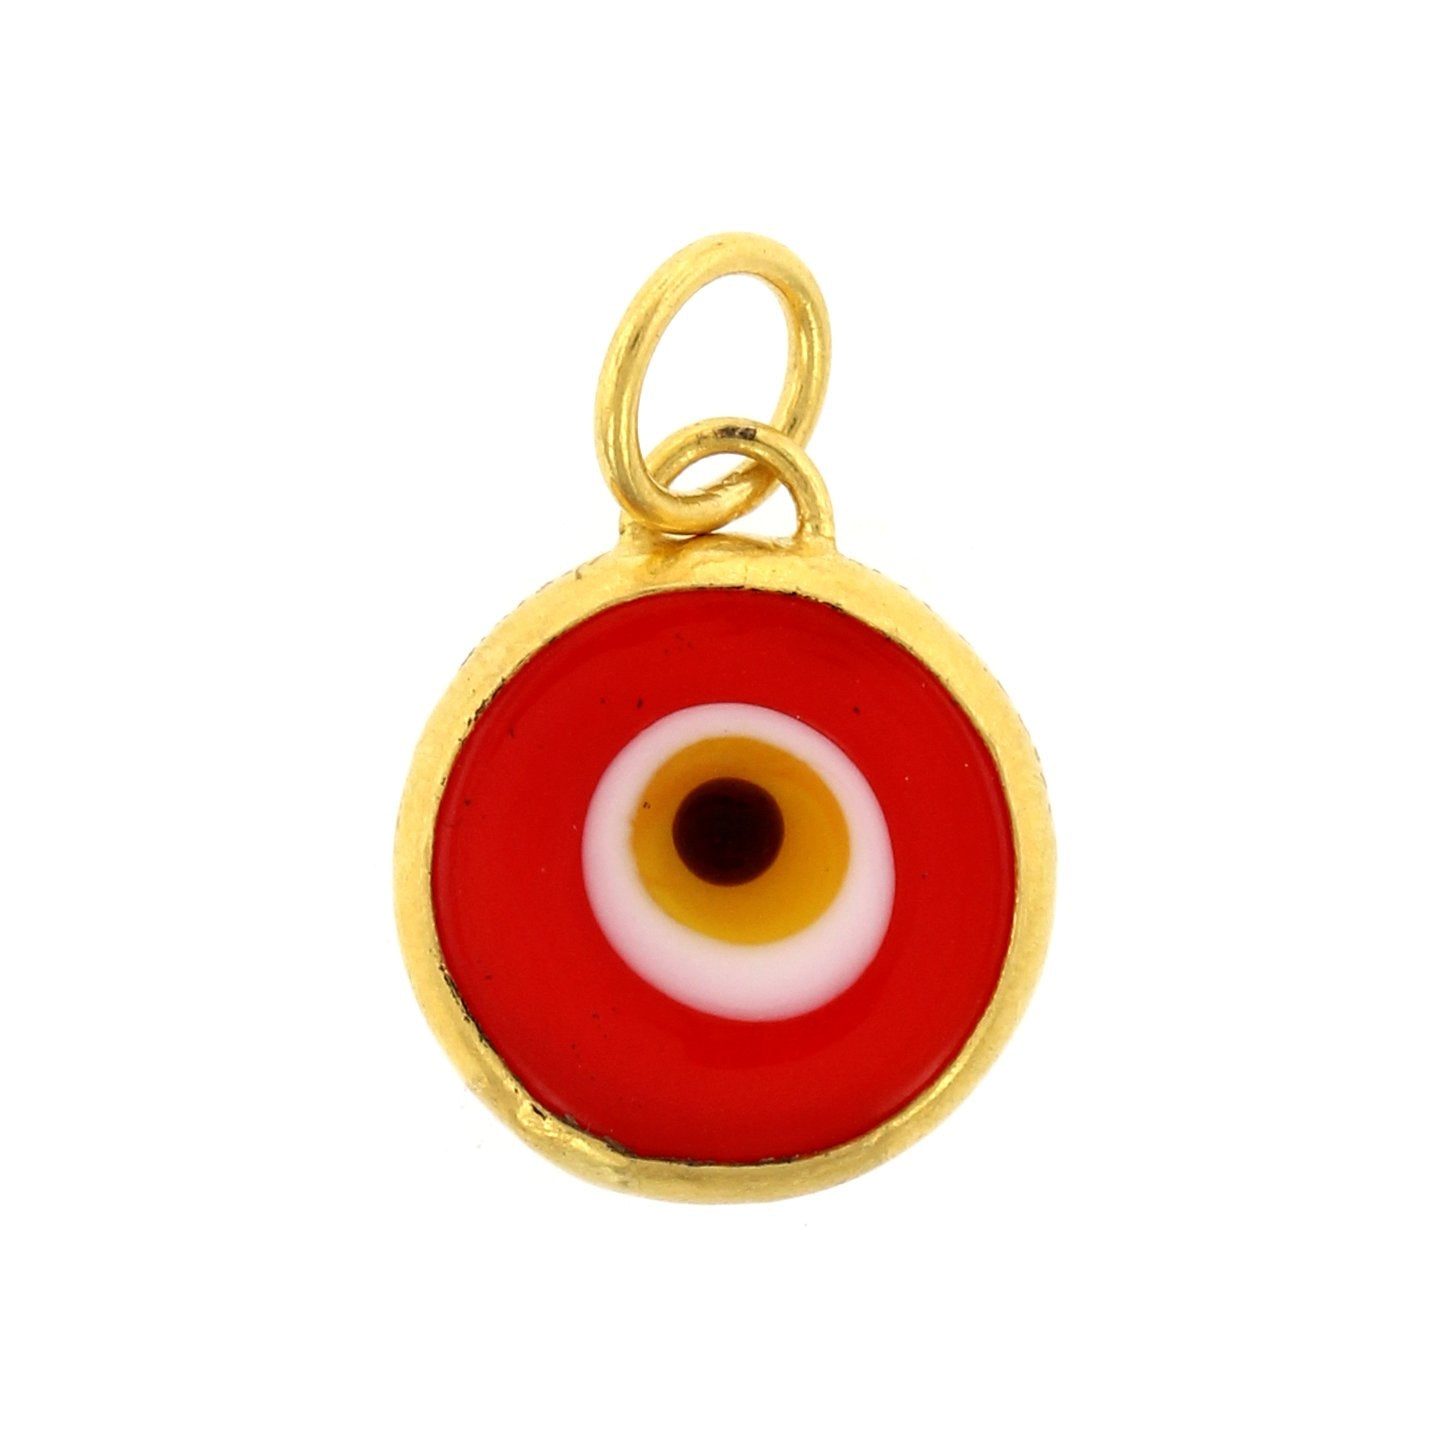 24K Yellow Gold Quartz Evil Eye Charm